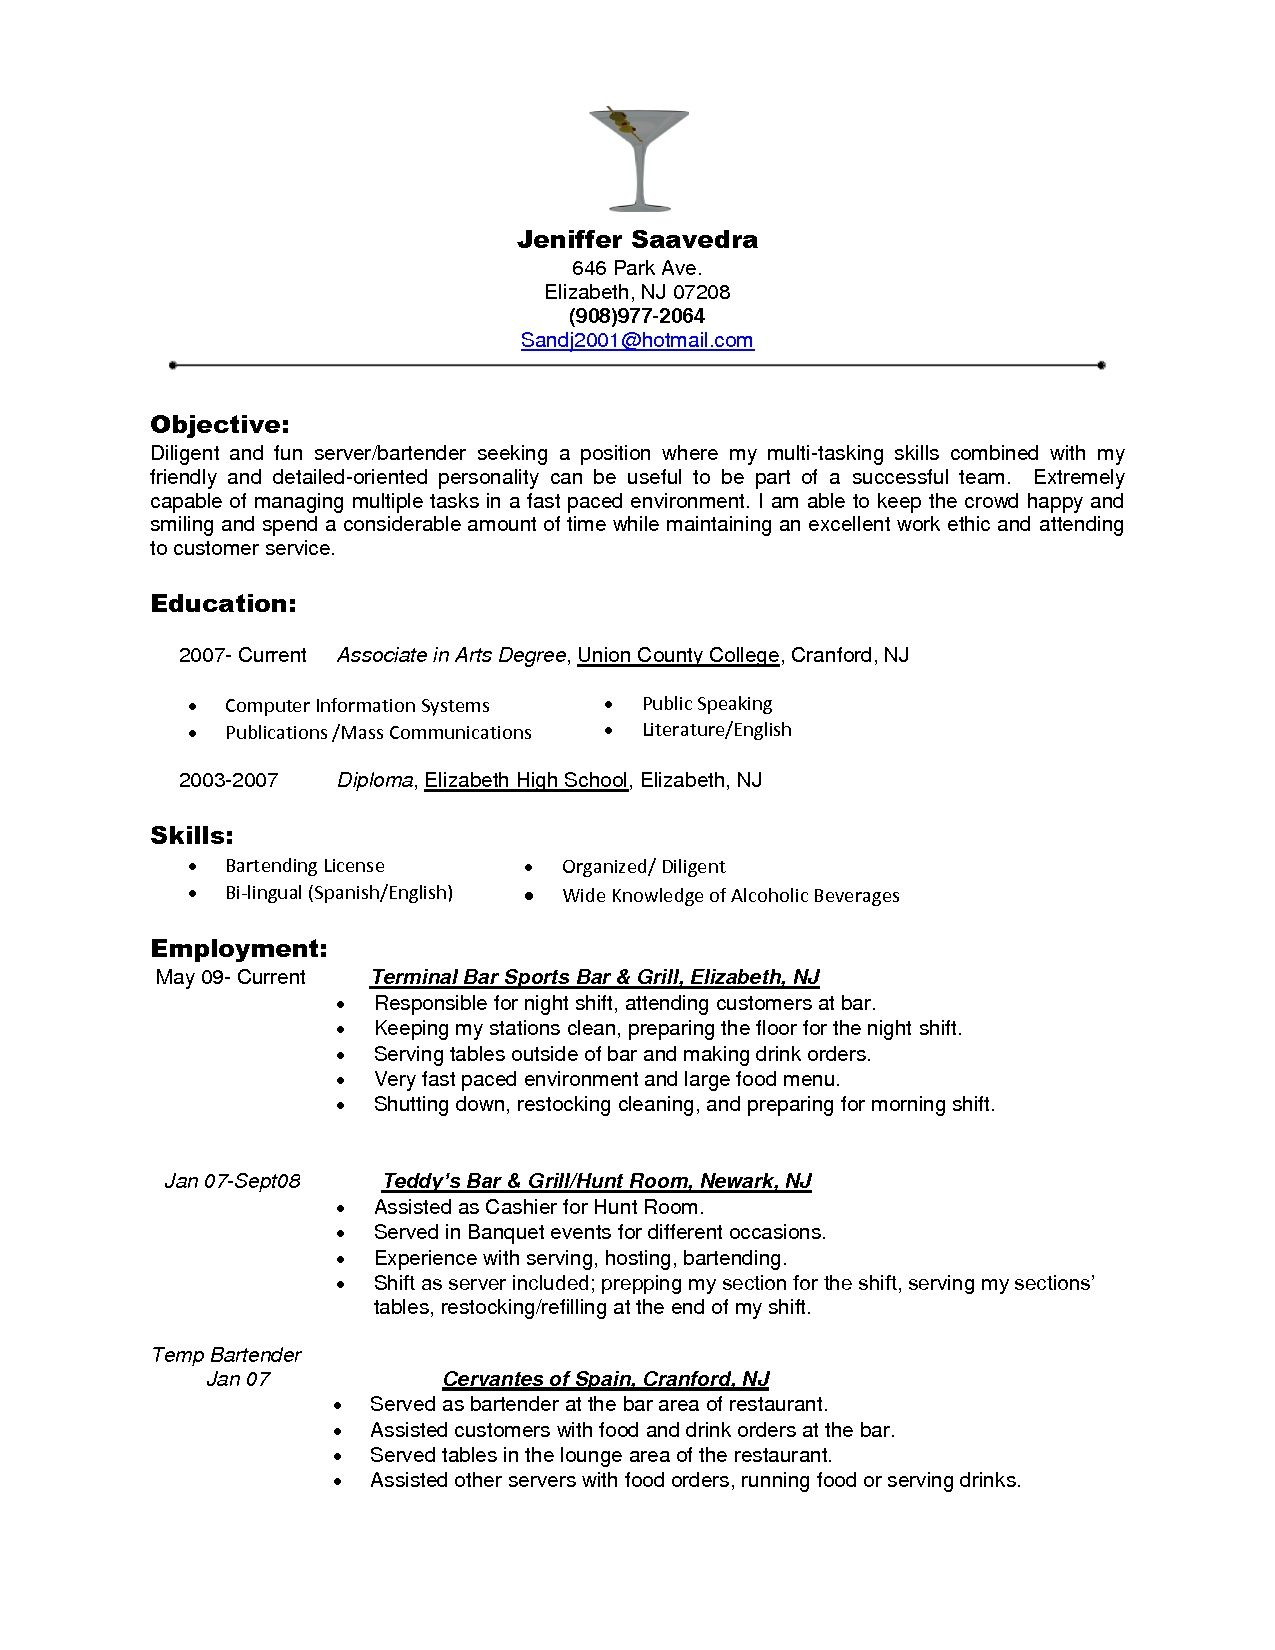 Objectives To Put On A Resume Bartender Objectives Resume  Bartender Objectives Resume Will